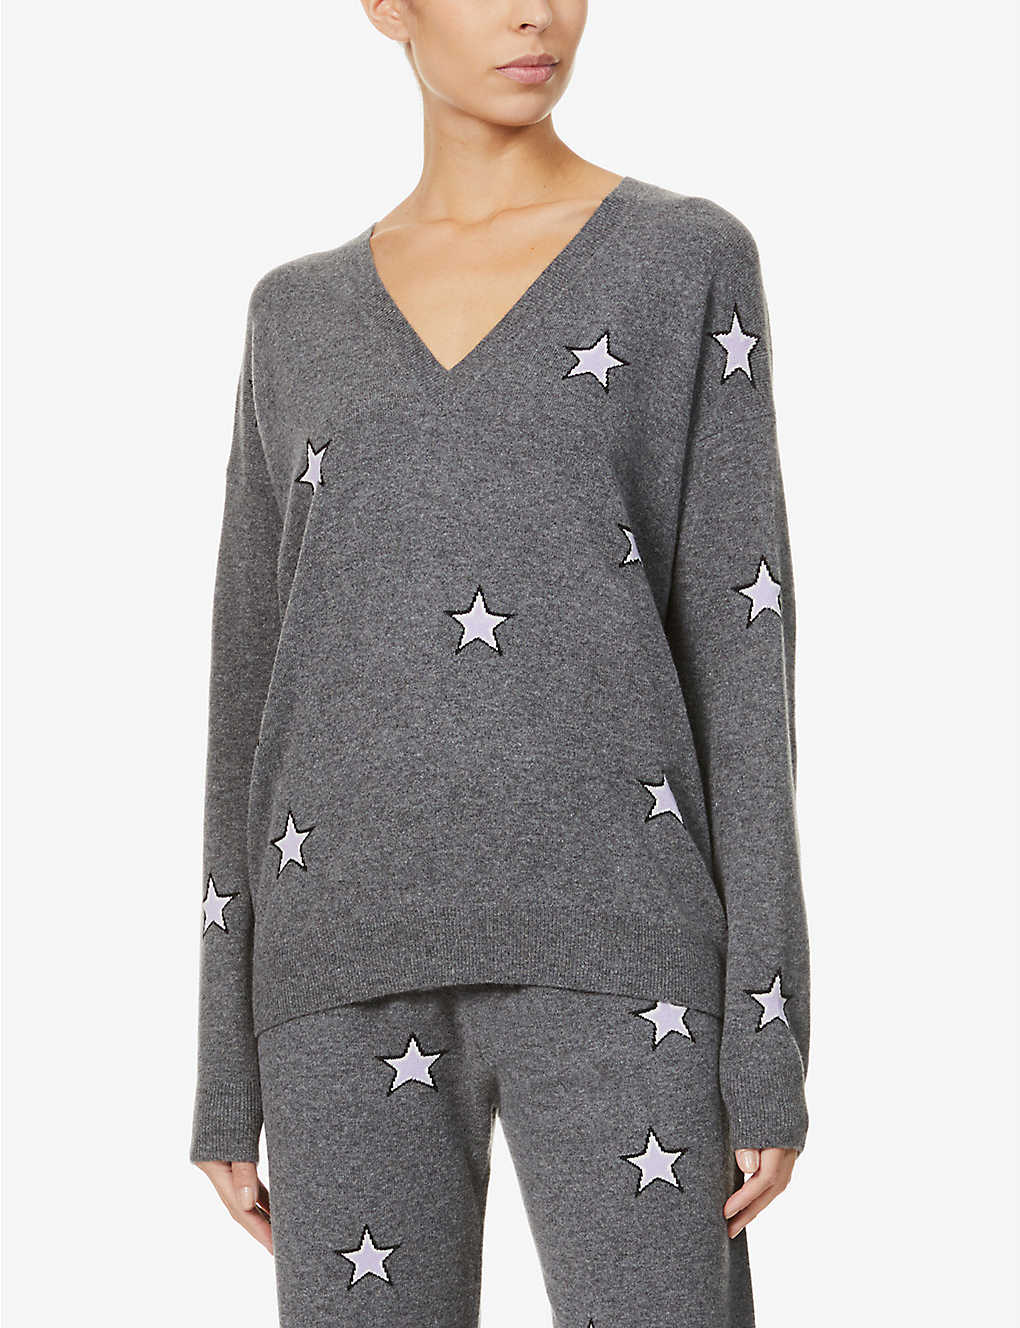 CHINTI AND PARKER: Star-print wool and cashmere-blend jumper